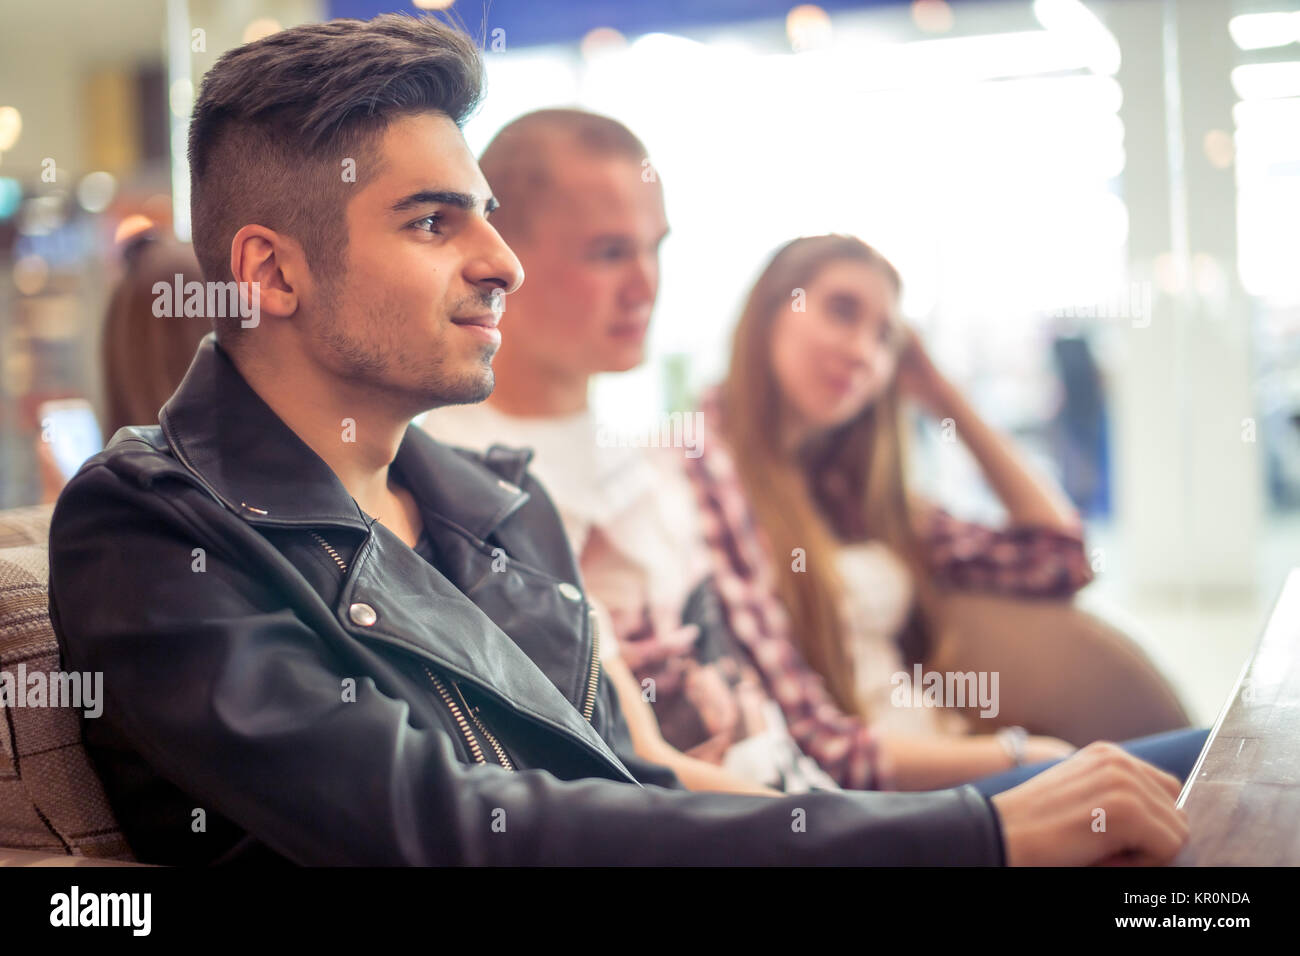 Group Of People Drinking Coffee in cafe Concept - Stock Image